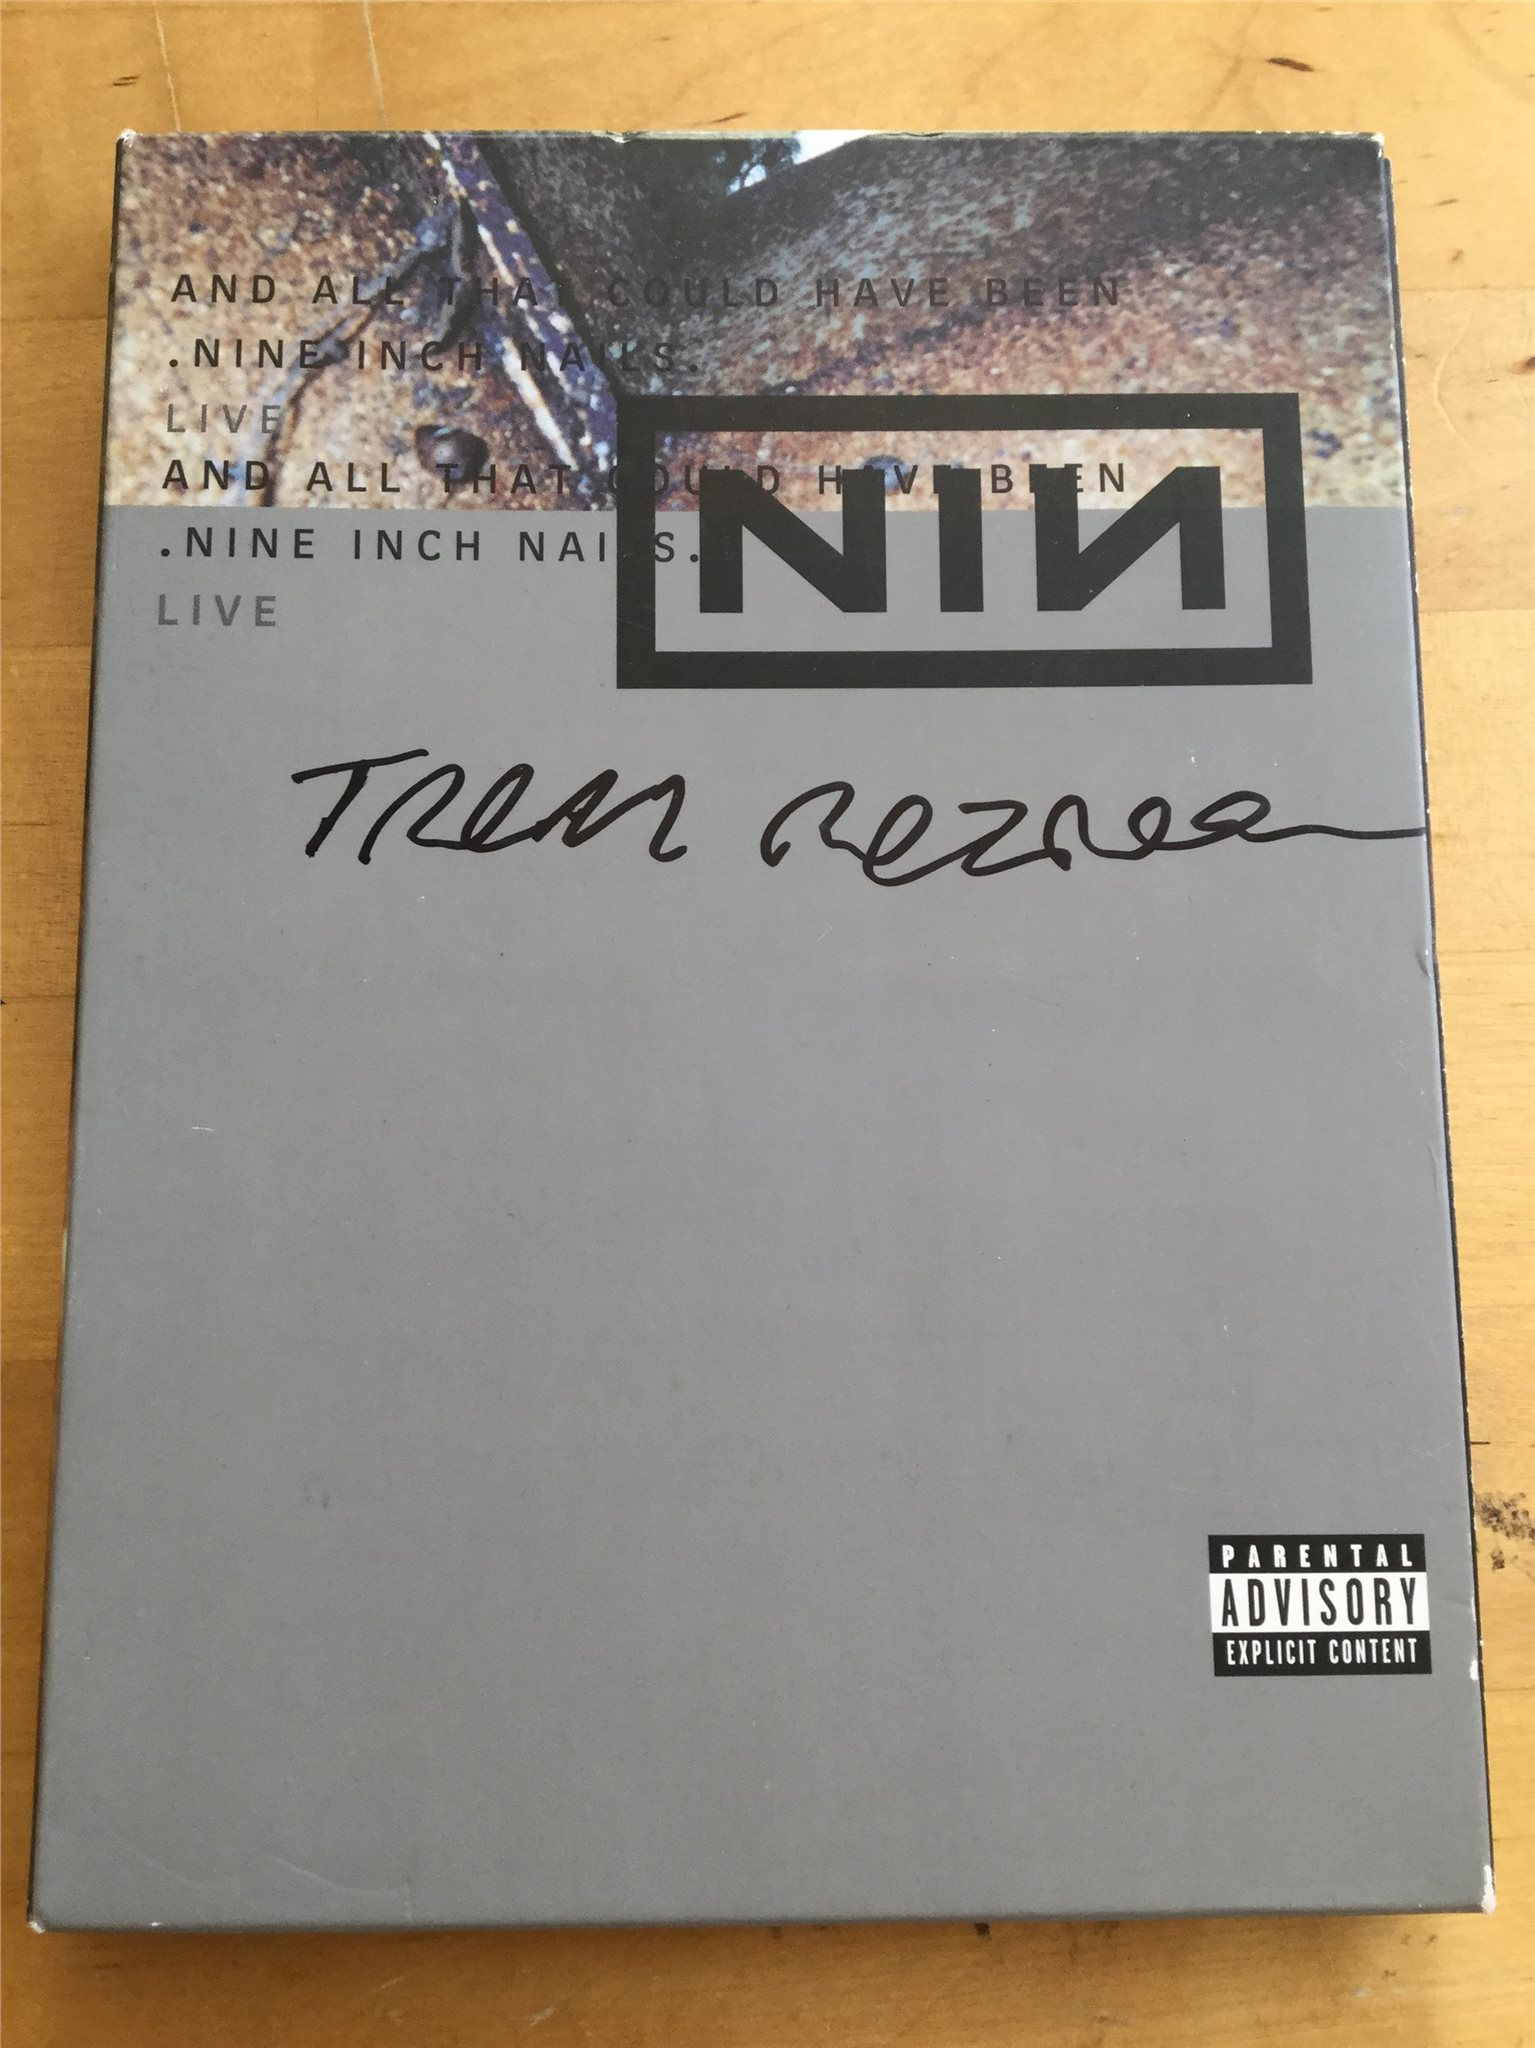 Autograf - Trent Reznor - Nine Inch Nails - And.. (312659500) ᐈ Köp ...